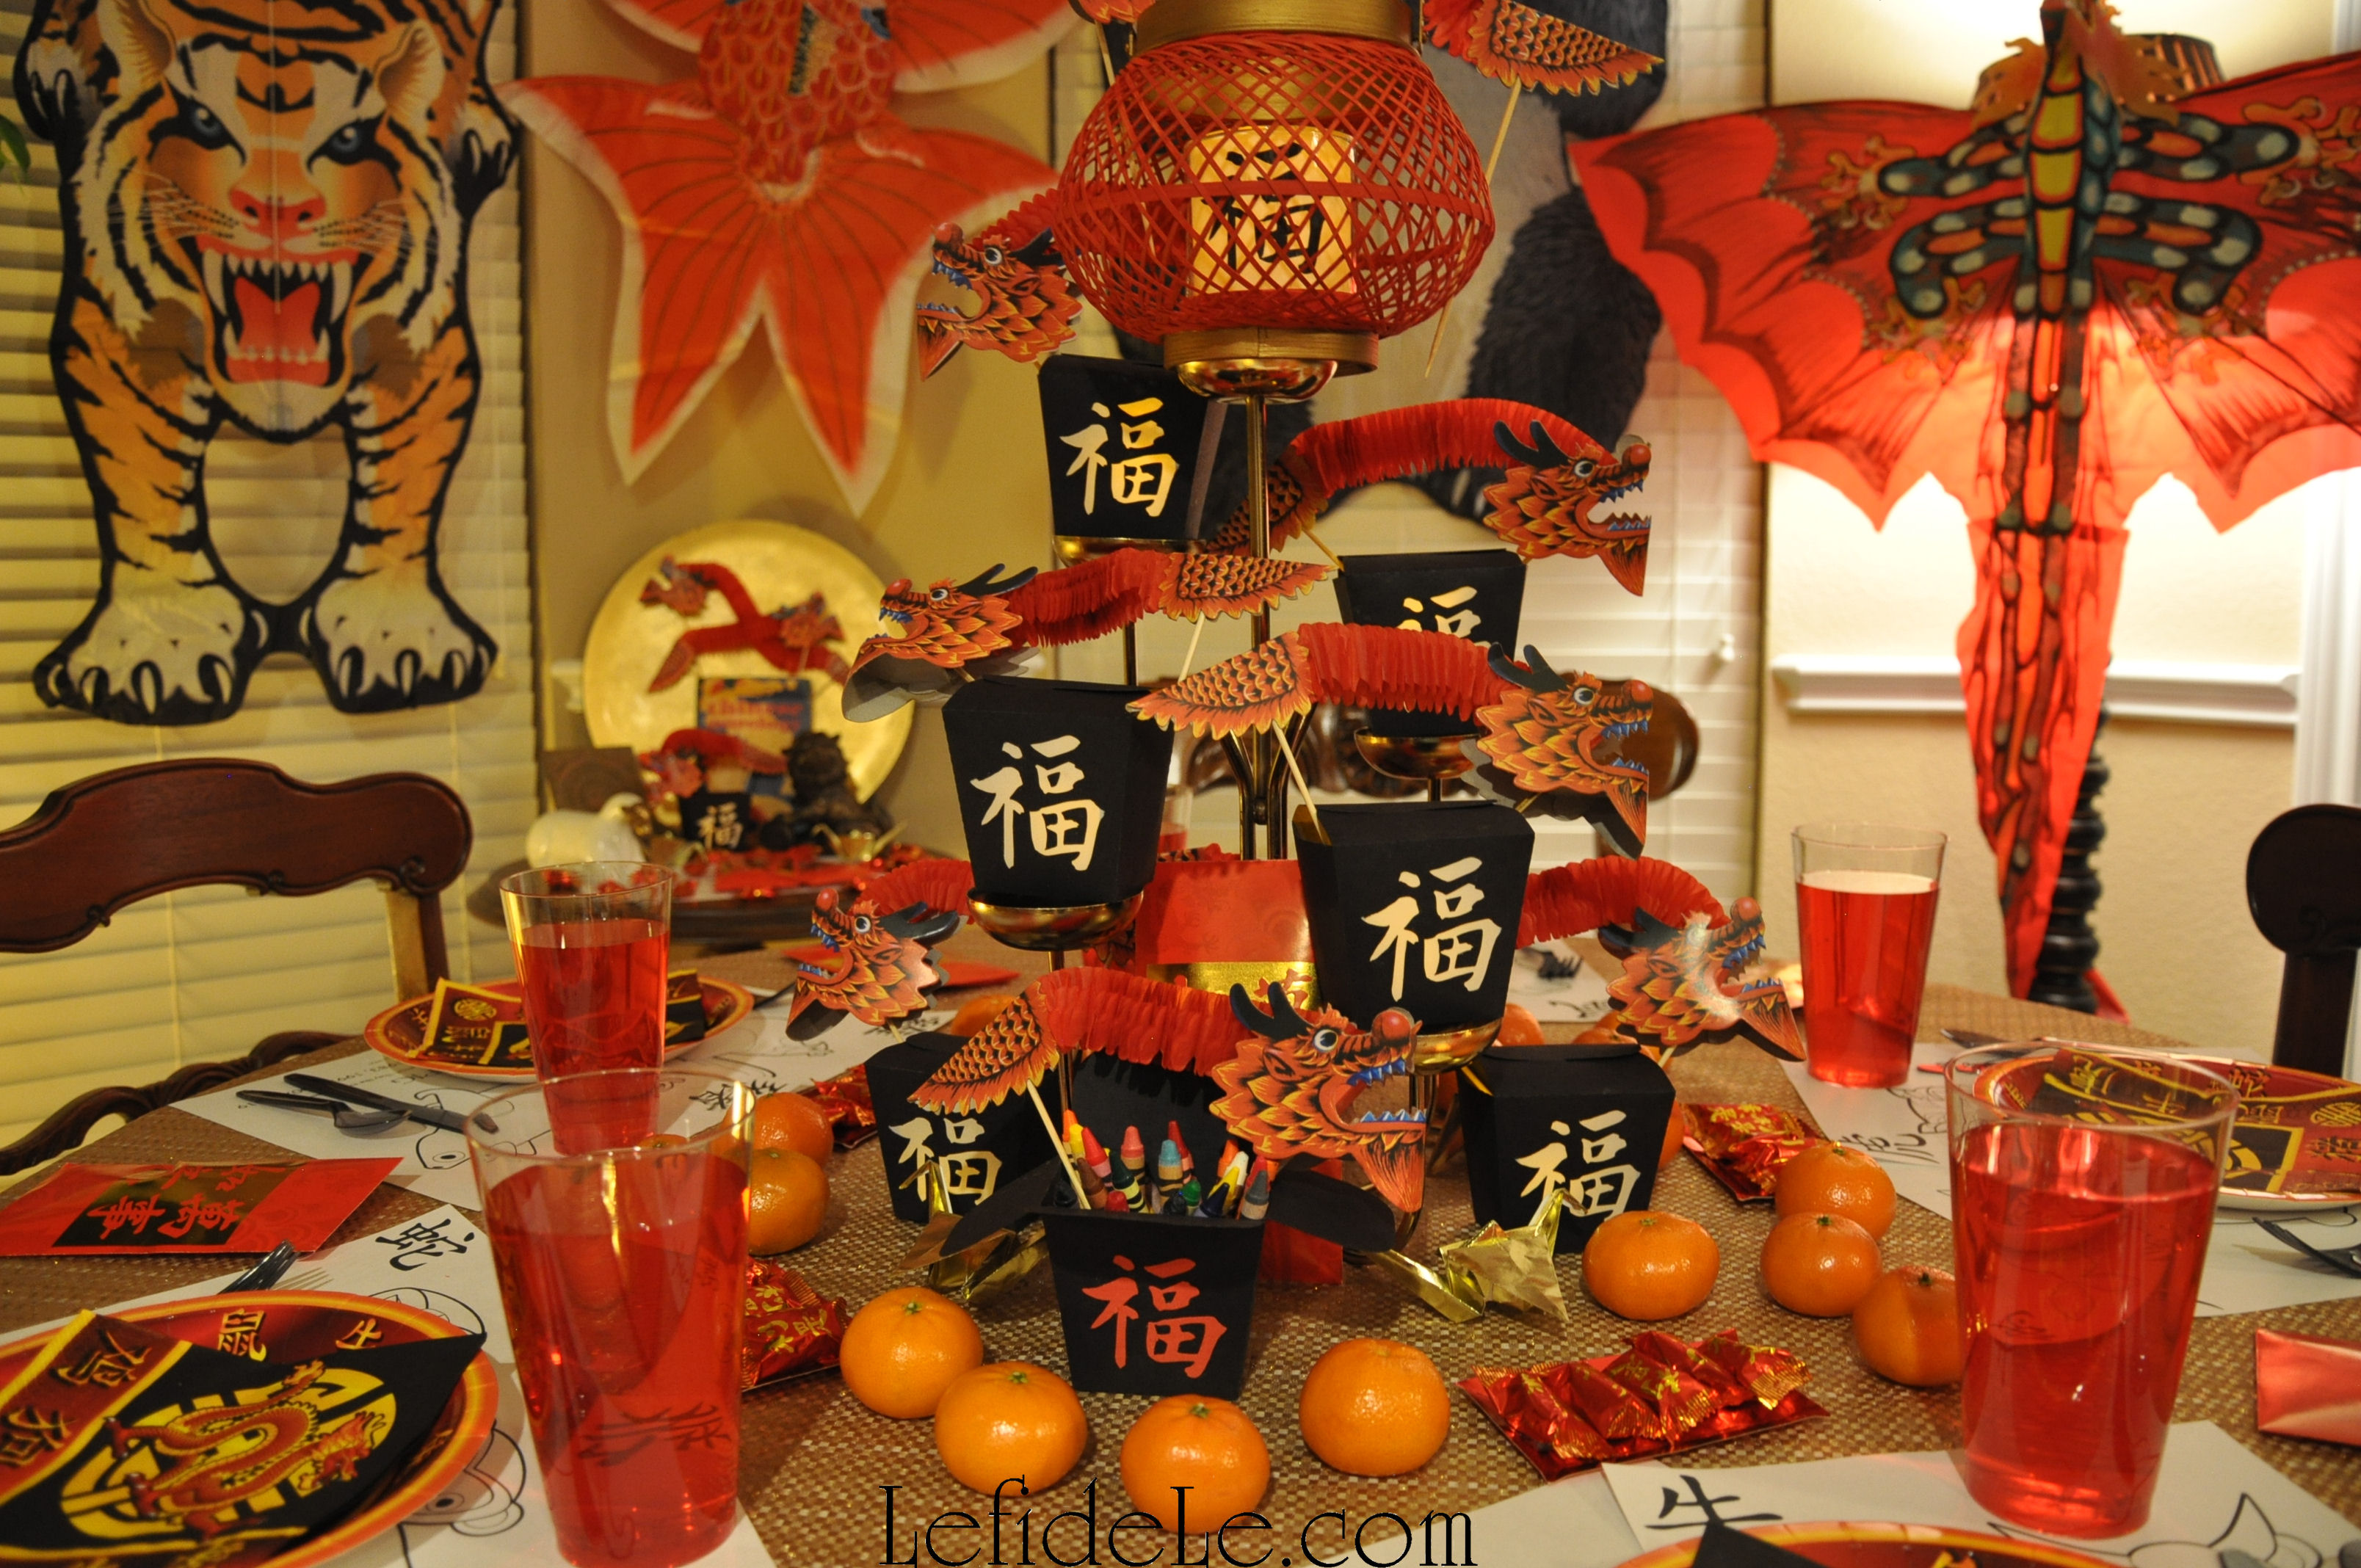 Modern chinese new year table setting - Lanterns Are A Traditional Element Of The Chinese New Year Because The Last Day Of It Is The Start Of The Lantern Festival My Printables Are An Easy Way To